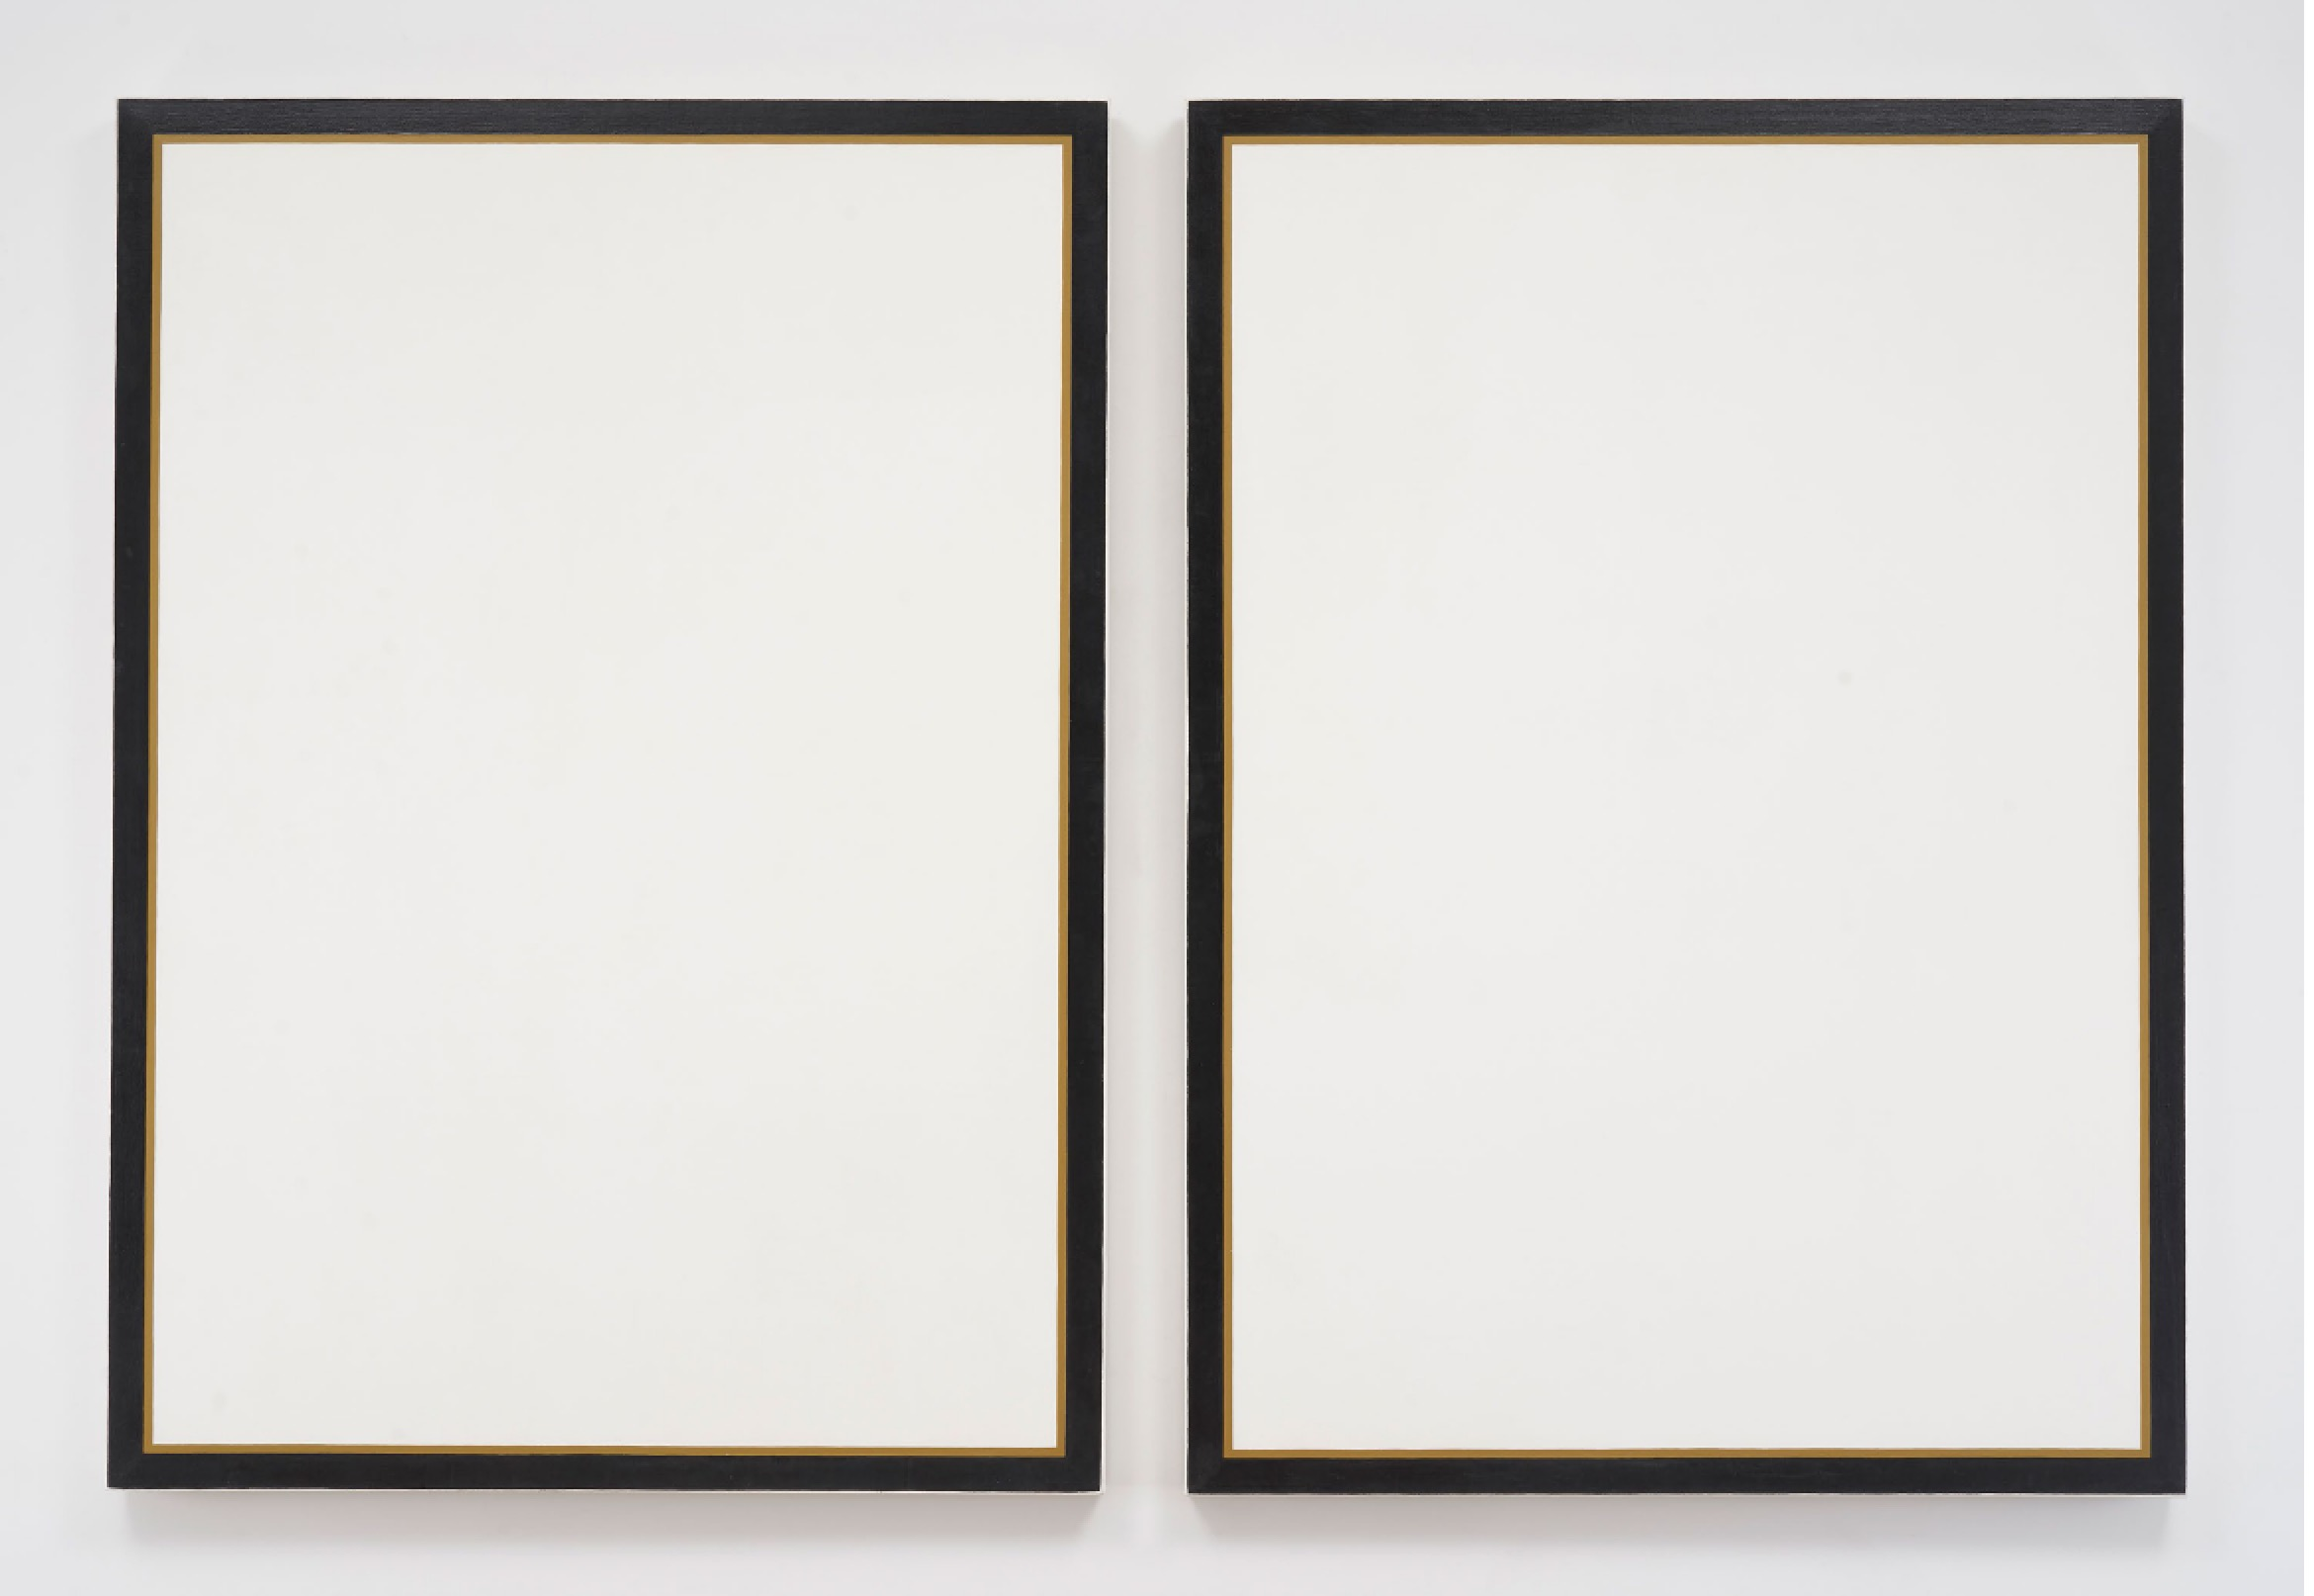 Jo Baer Untitled Diptych, 1966-1968 oil on canvas - image courtesy Pace Gallery